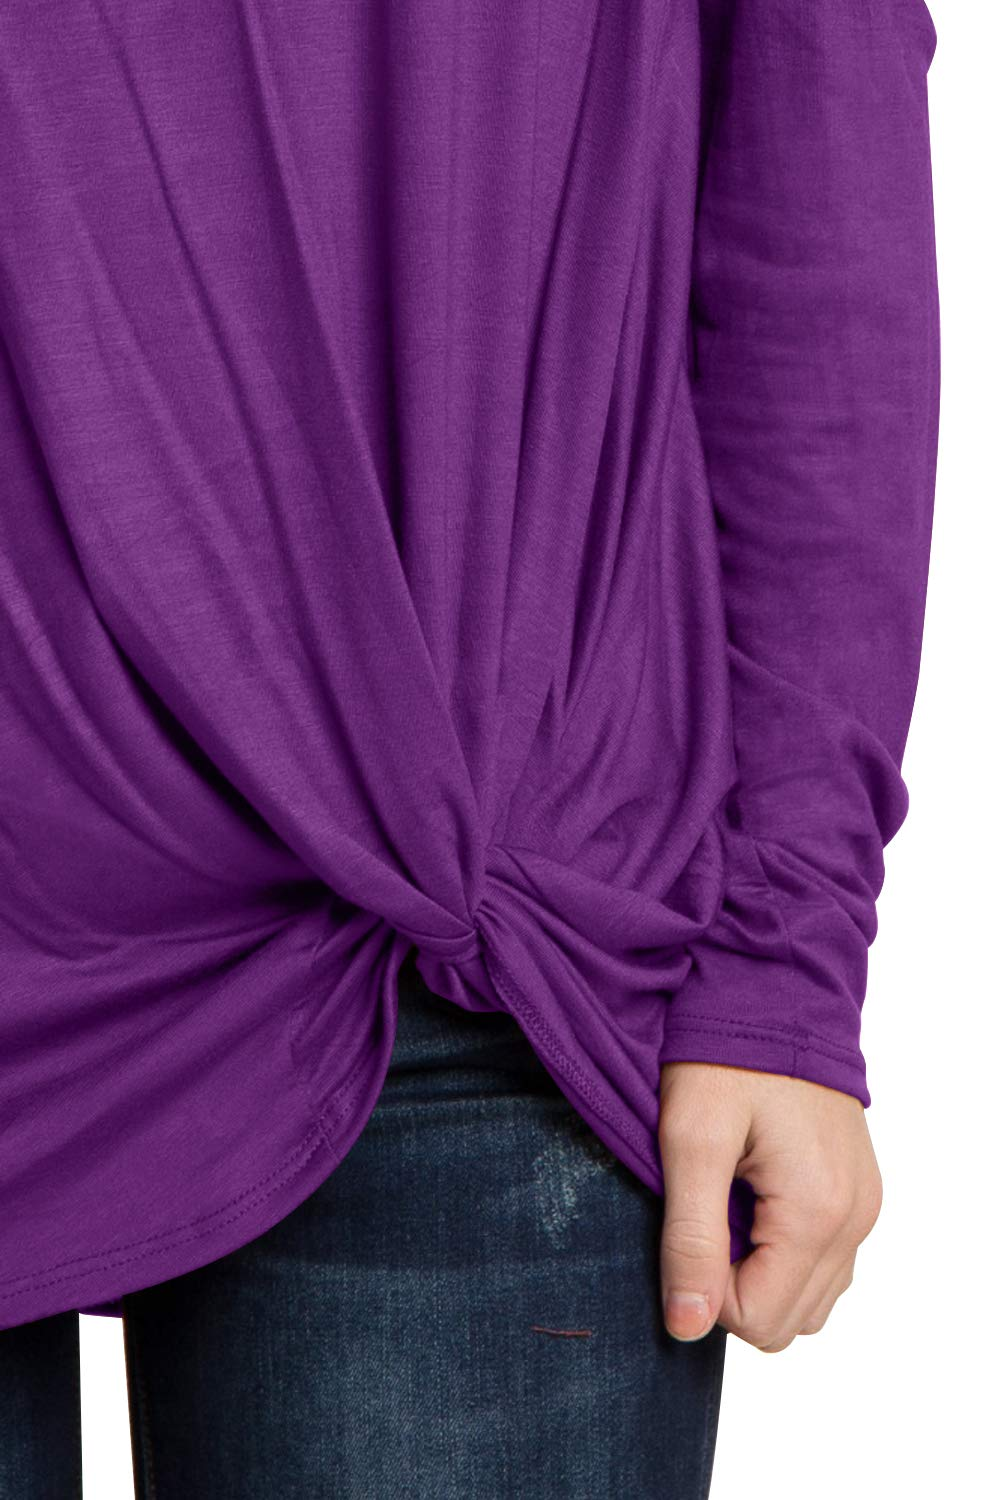 Eanklosco Women's Long Sleeve Cold Shoulder Cut Out T Shirts Casual Knot Tunic Tops (Purple, XL)